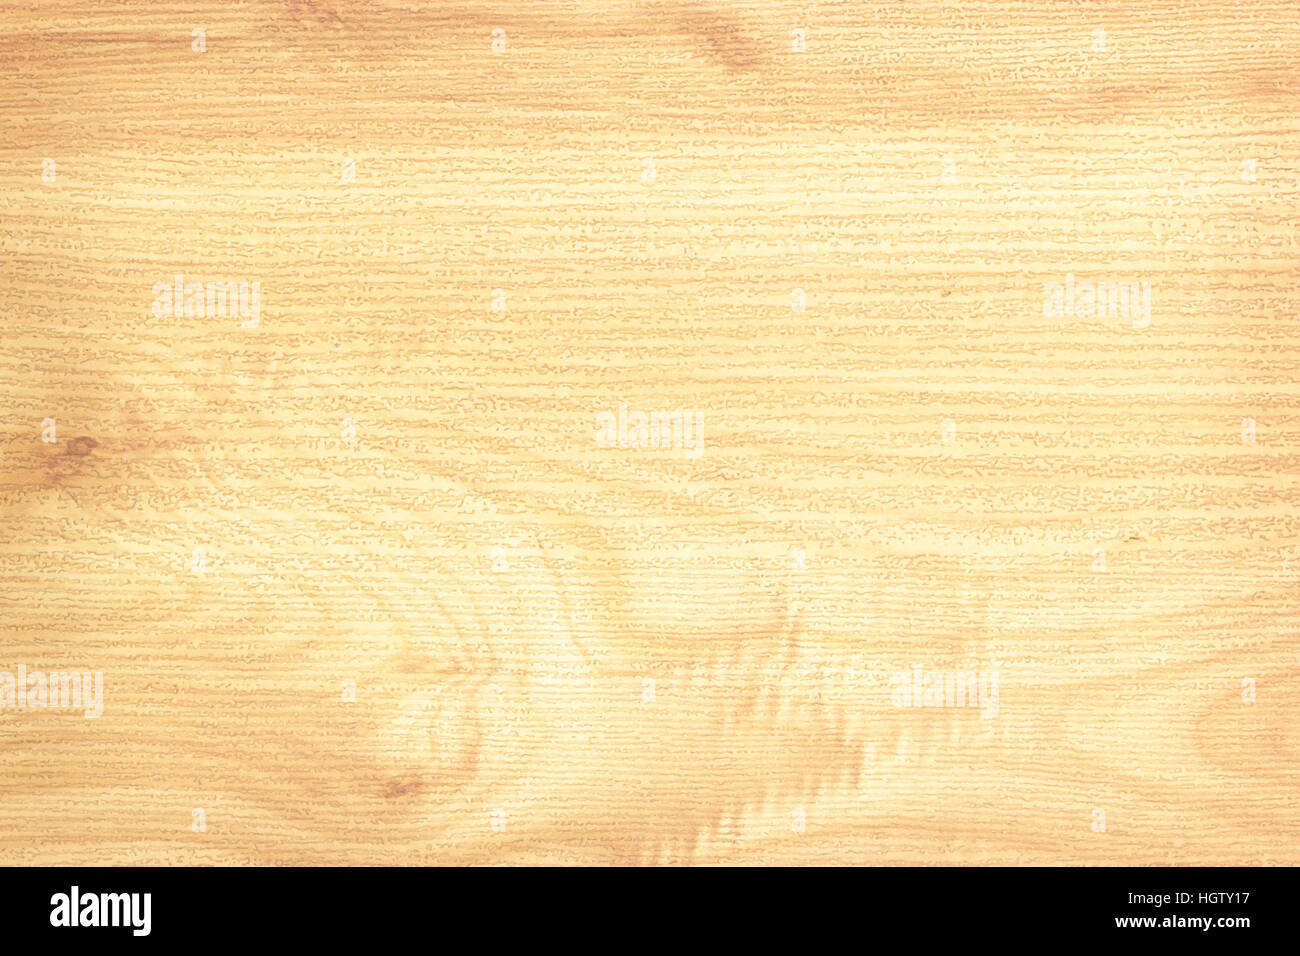 Hardwood maple basketball court floor viewed from above - Stock Image